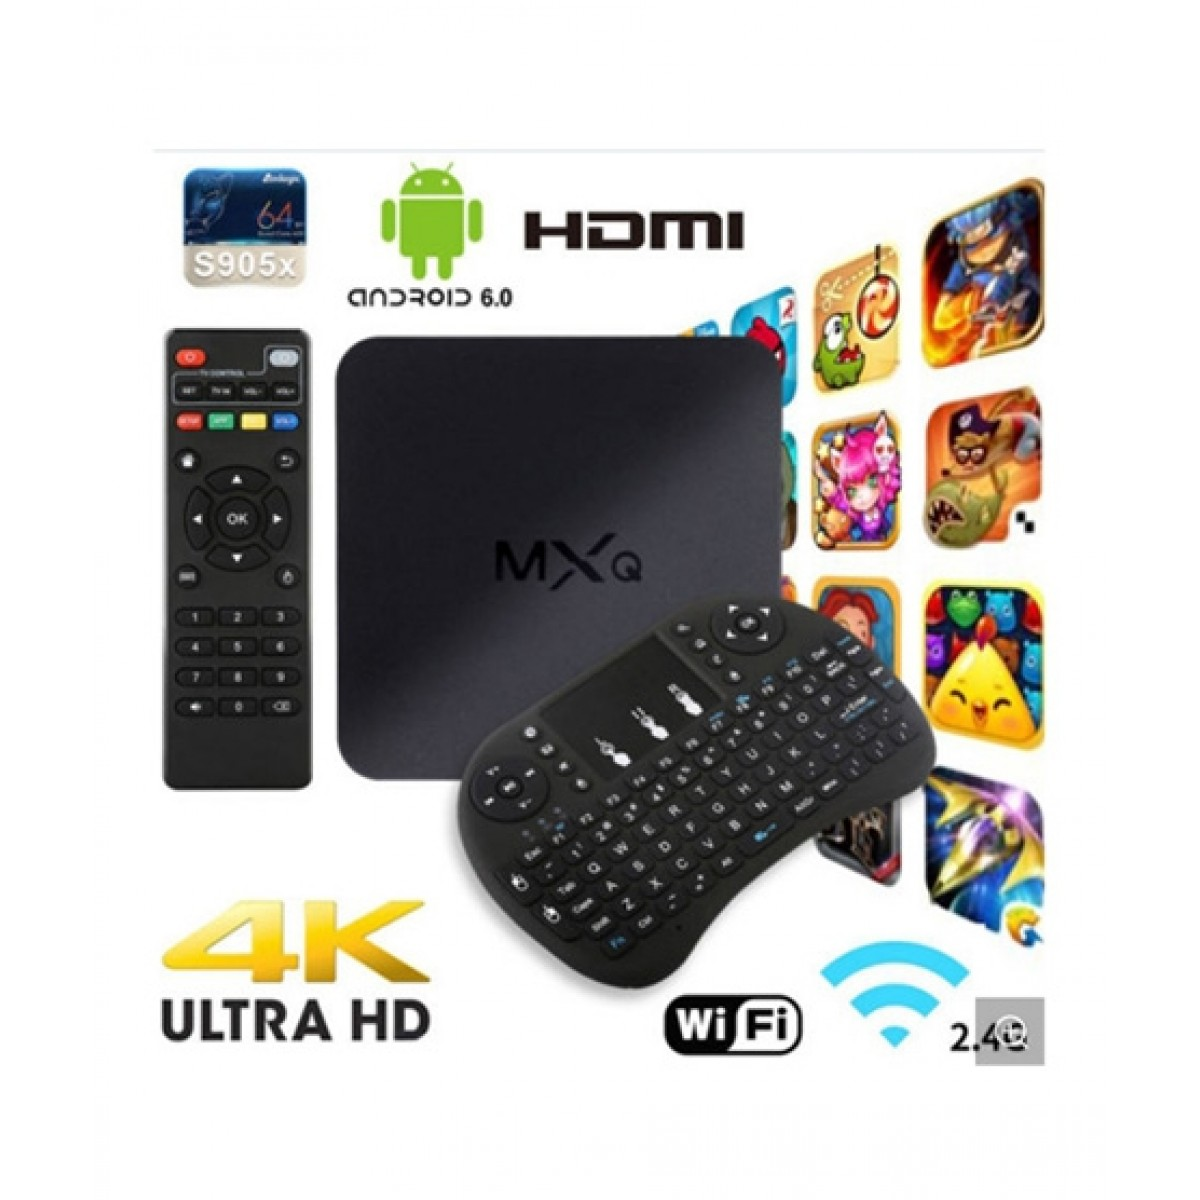 53b7a9f70f8 Cool Boy Mart MXQ 4K Android TV Box Price in Pakistan